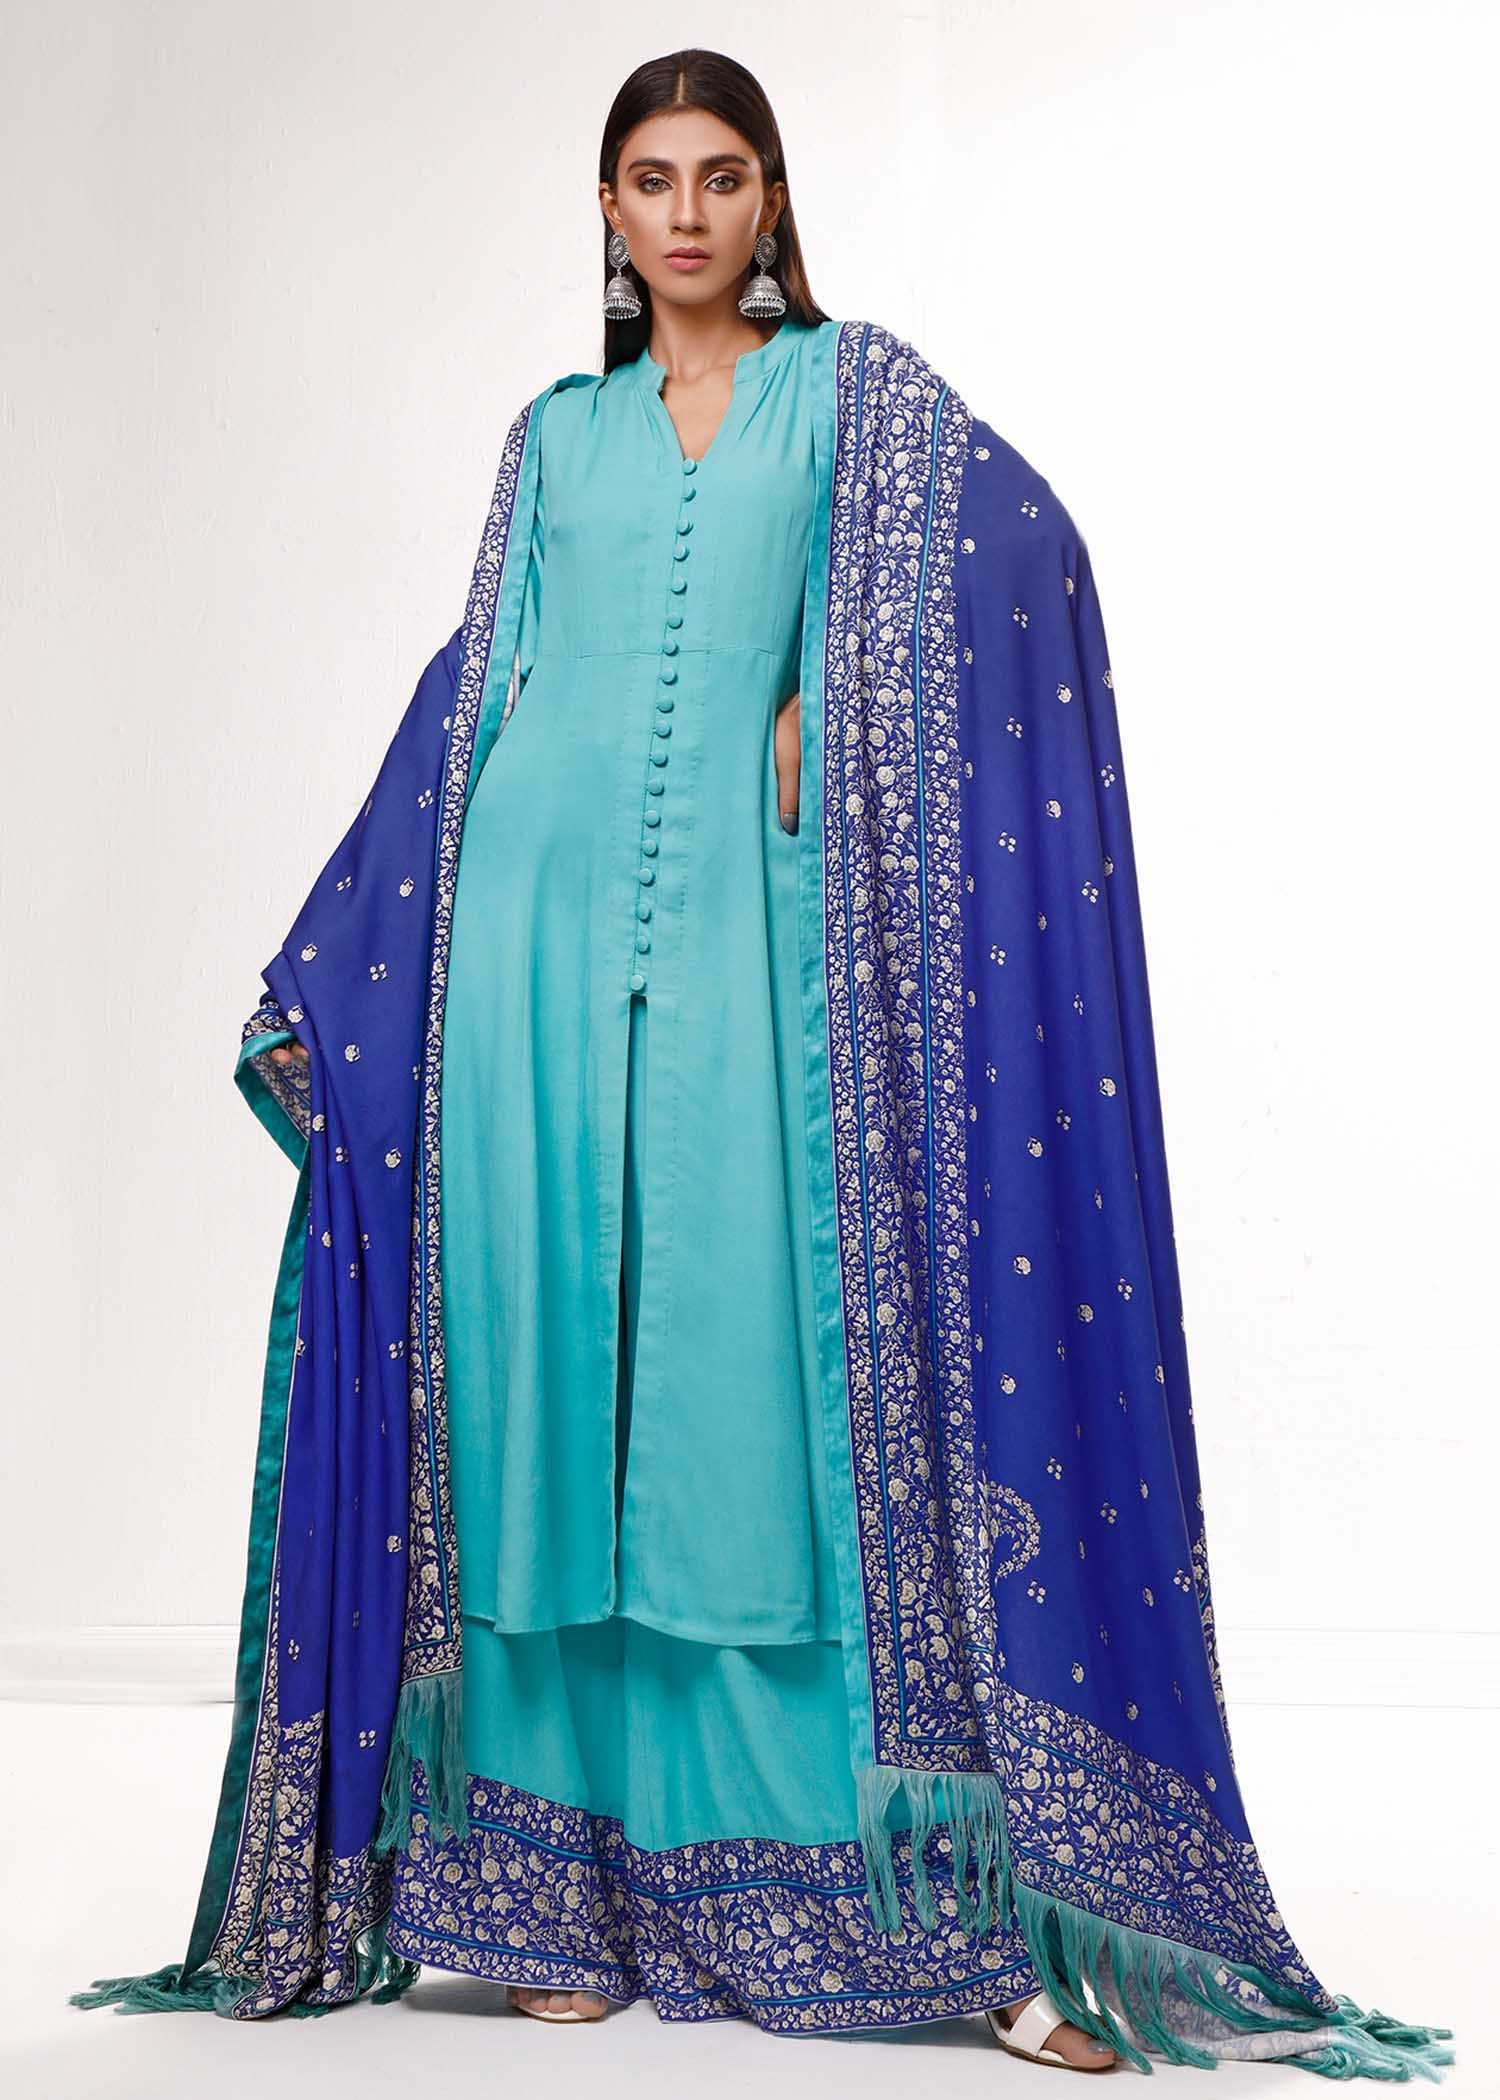 CHARBAGH SHAWL / SUIT